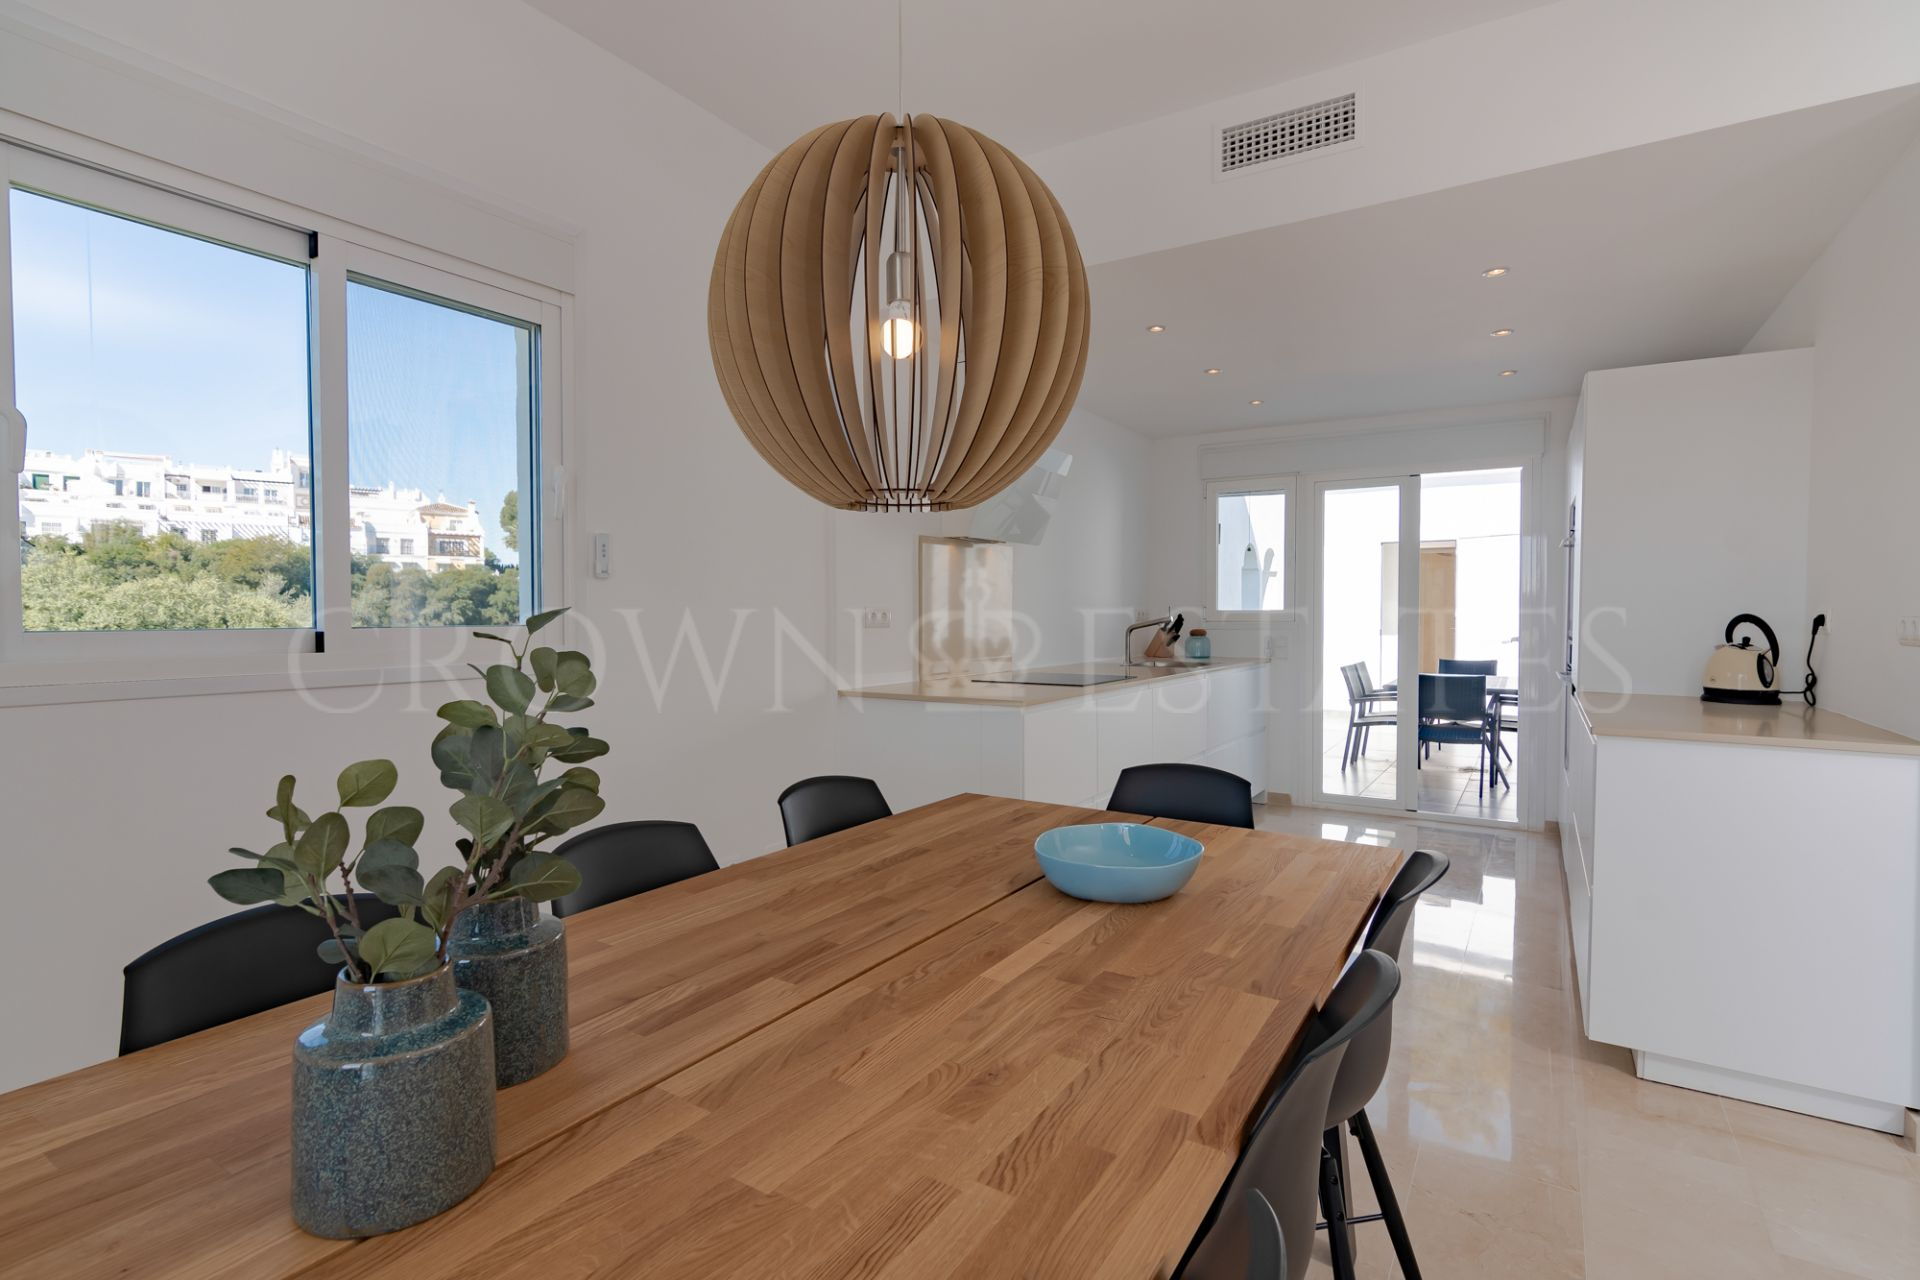 Completely renovated townhouse in Nueva Andalucia